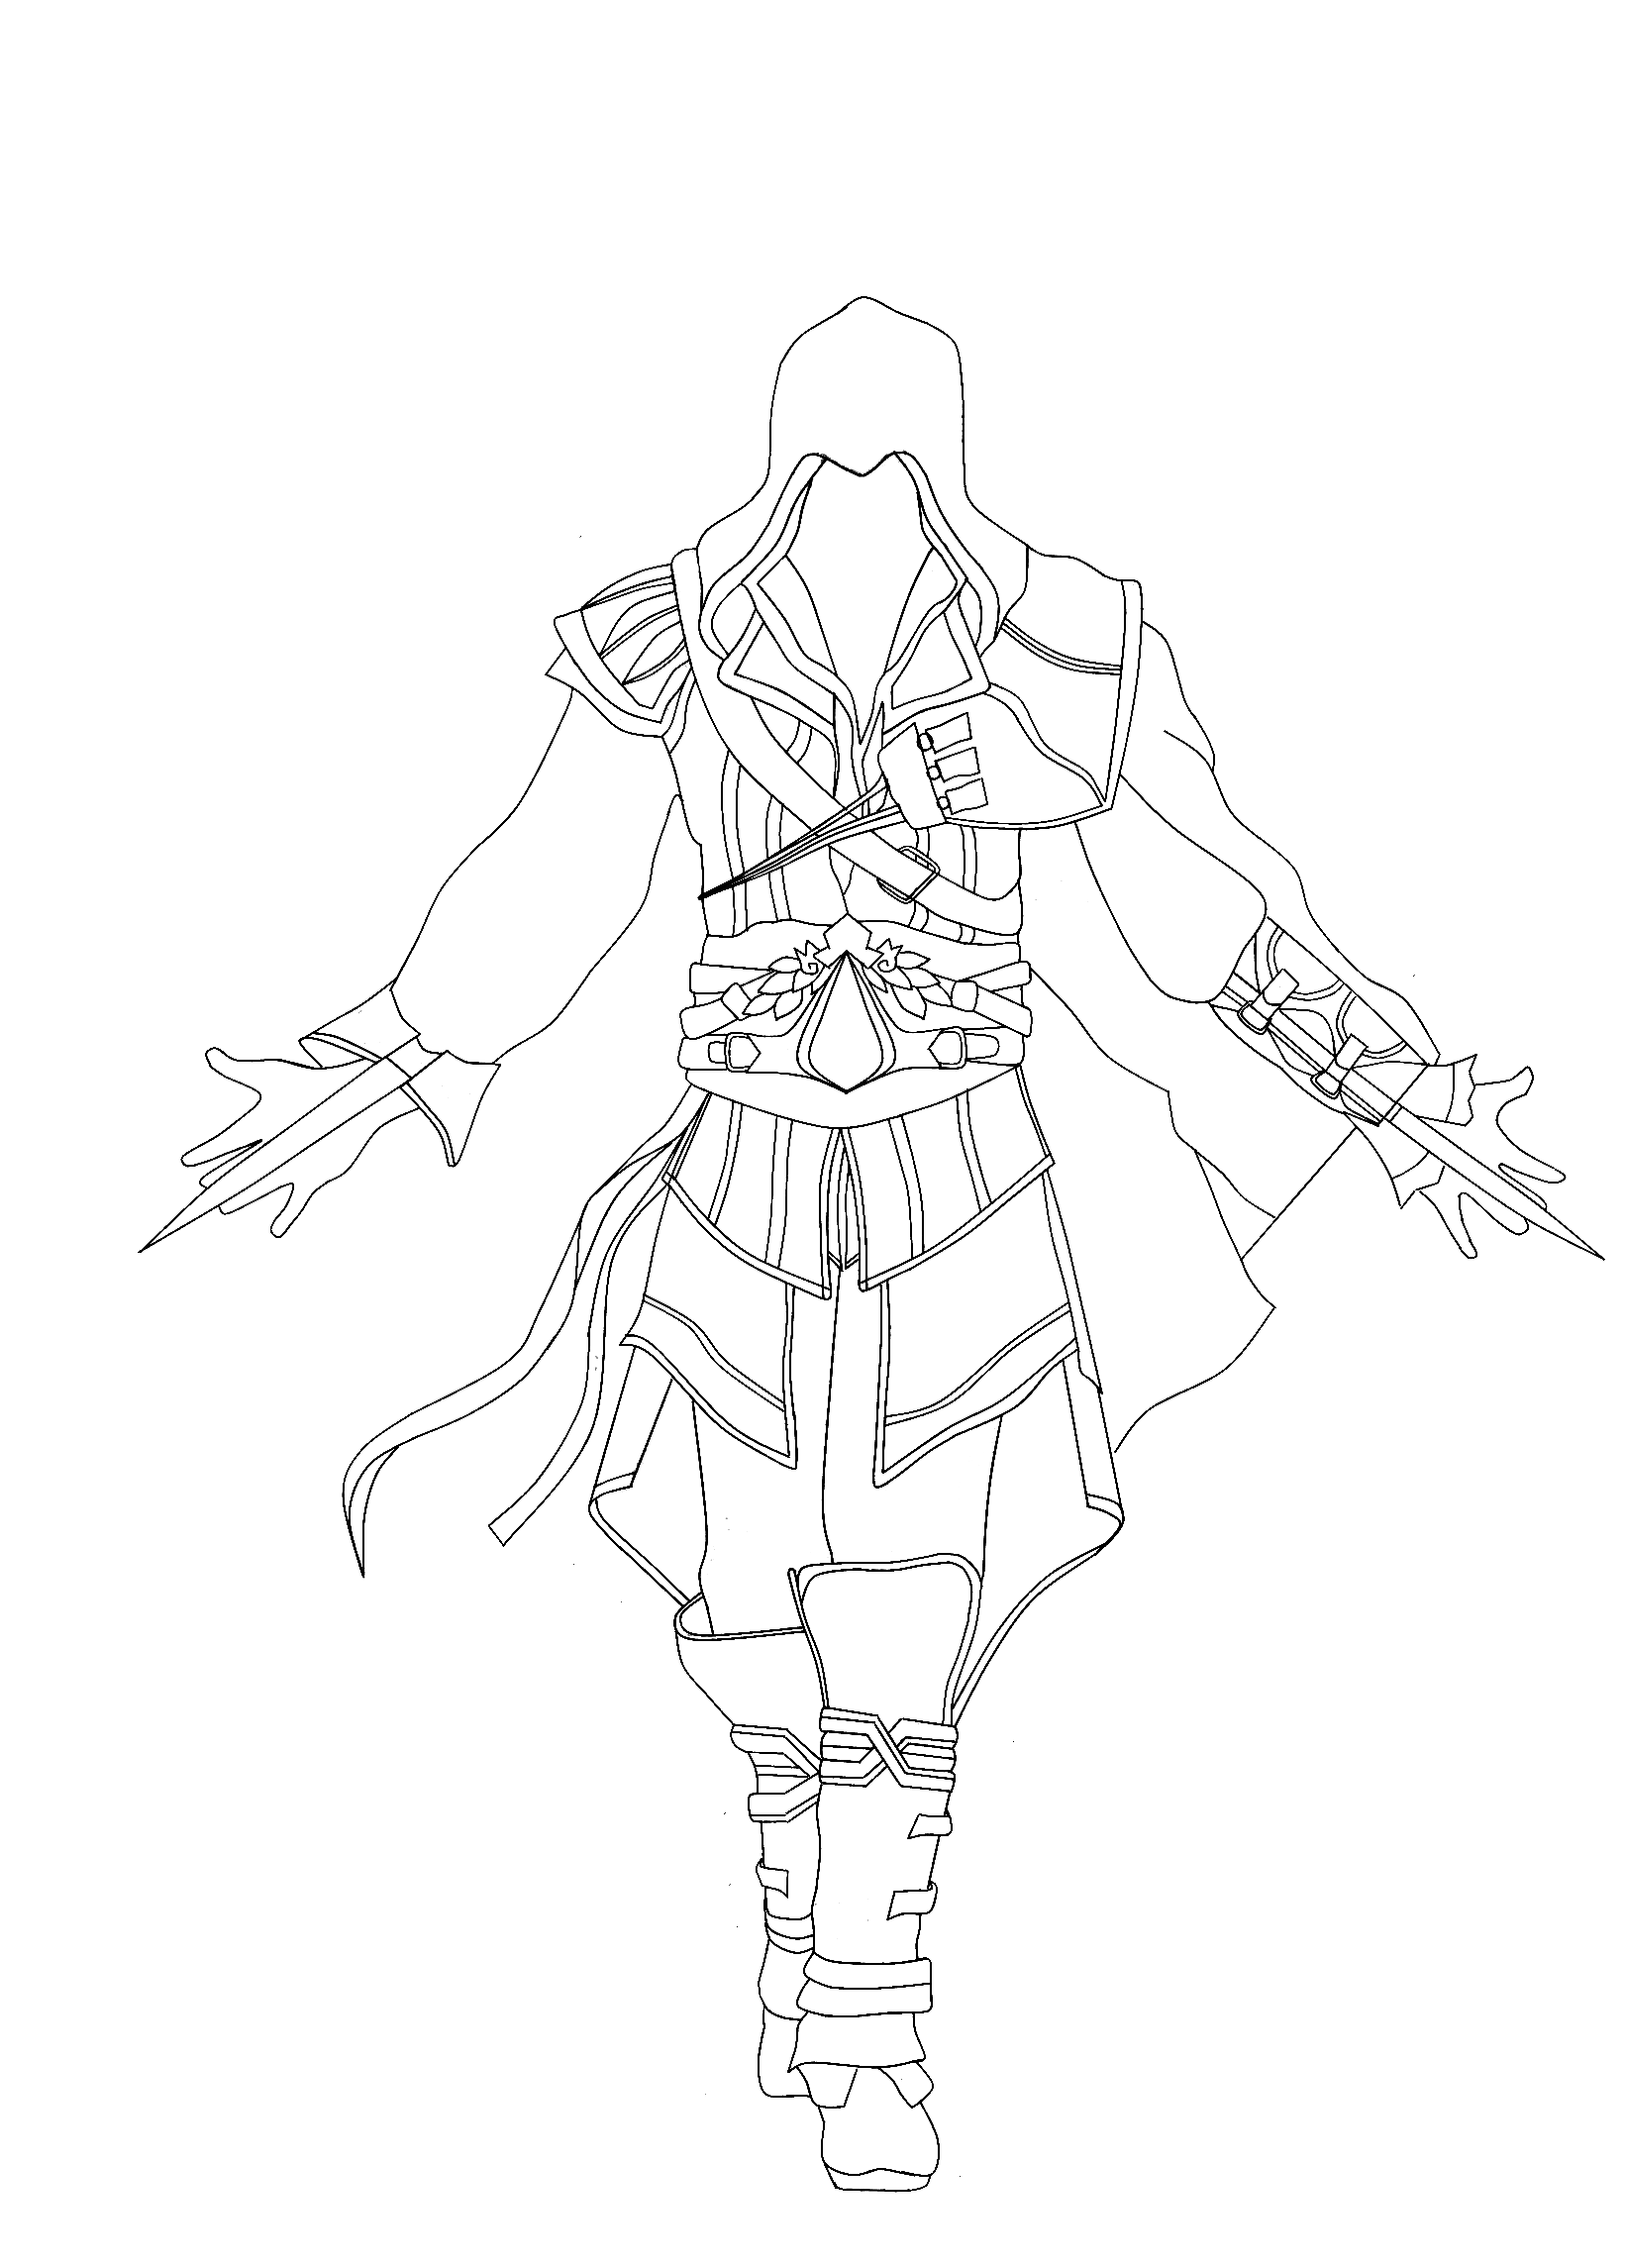 Free Assassin Creed Coloring Pages Holidays Birthdays Assassins